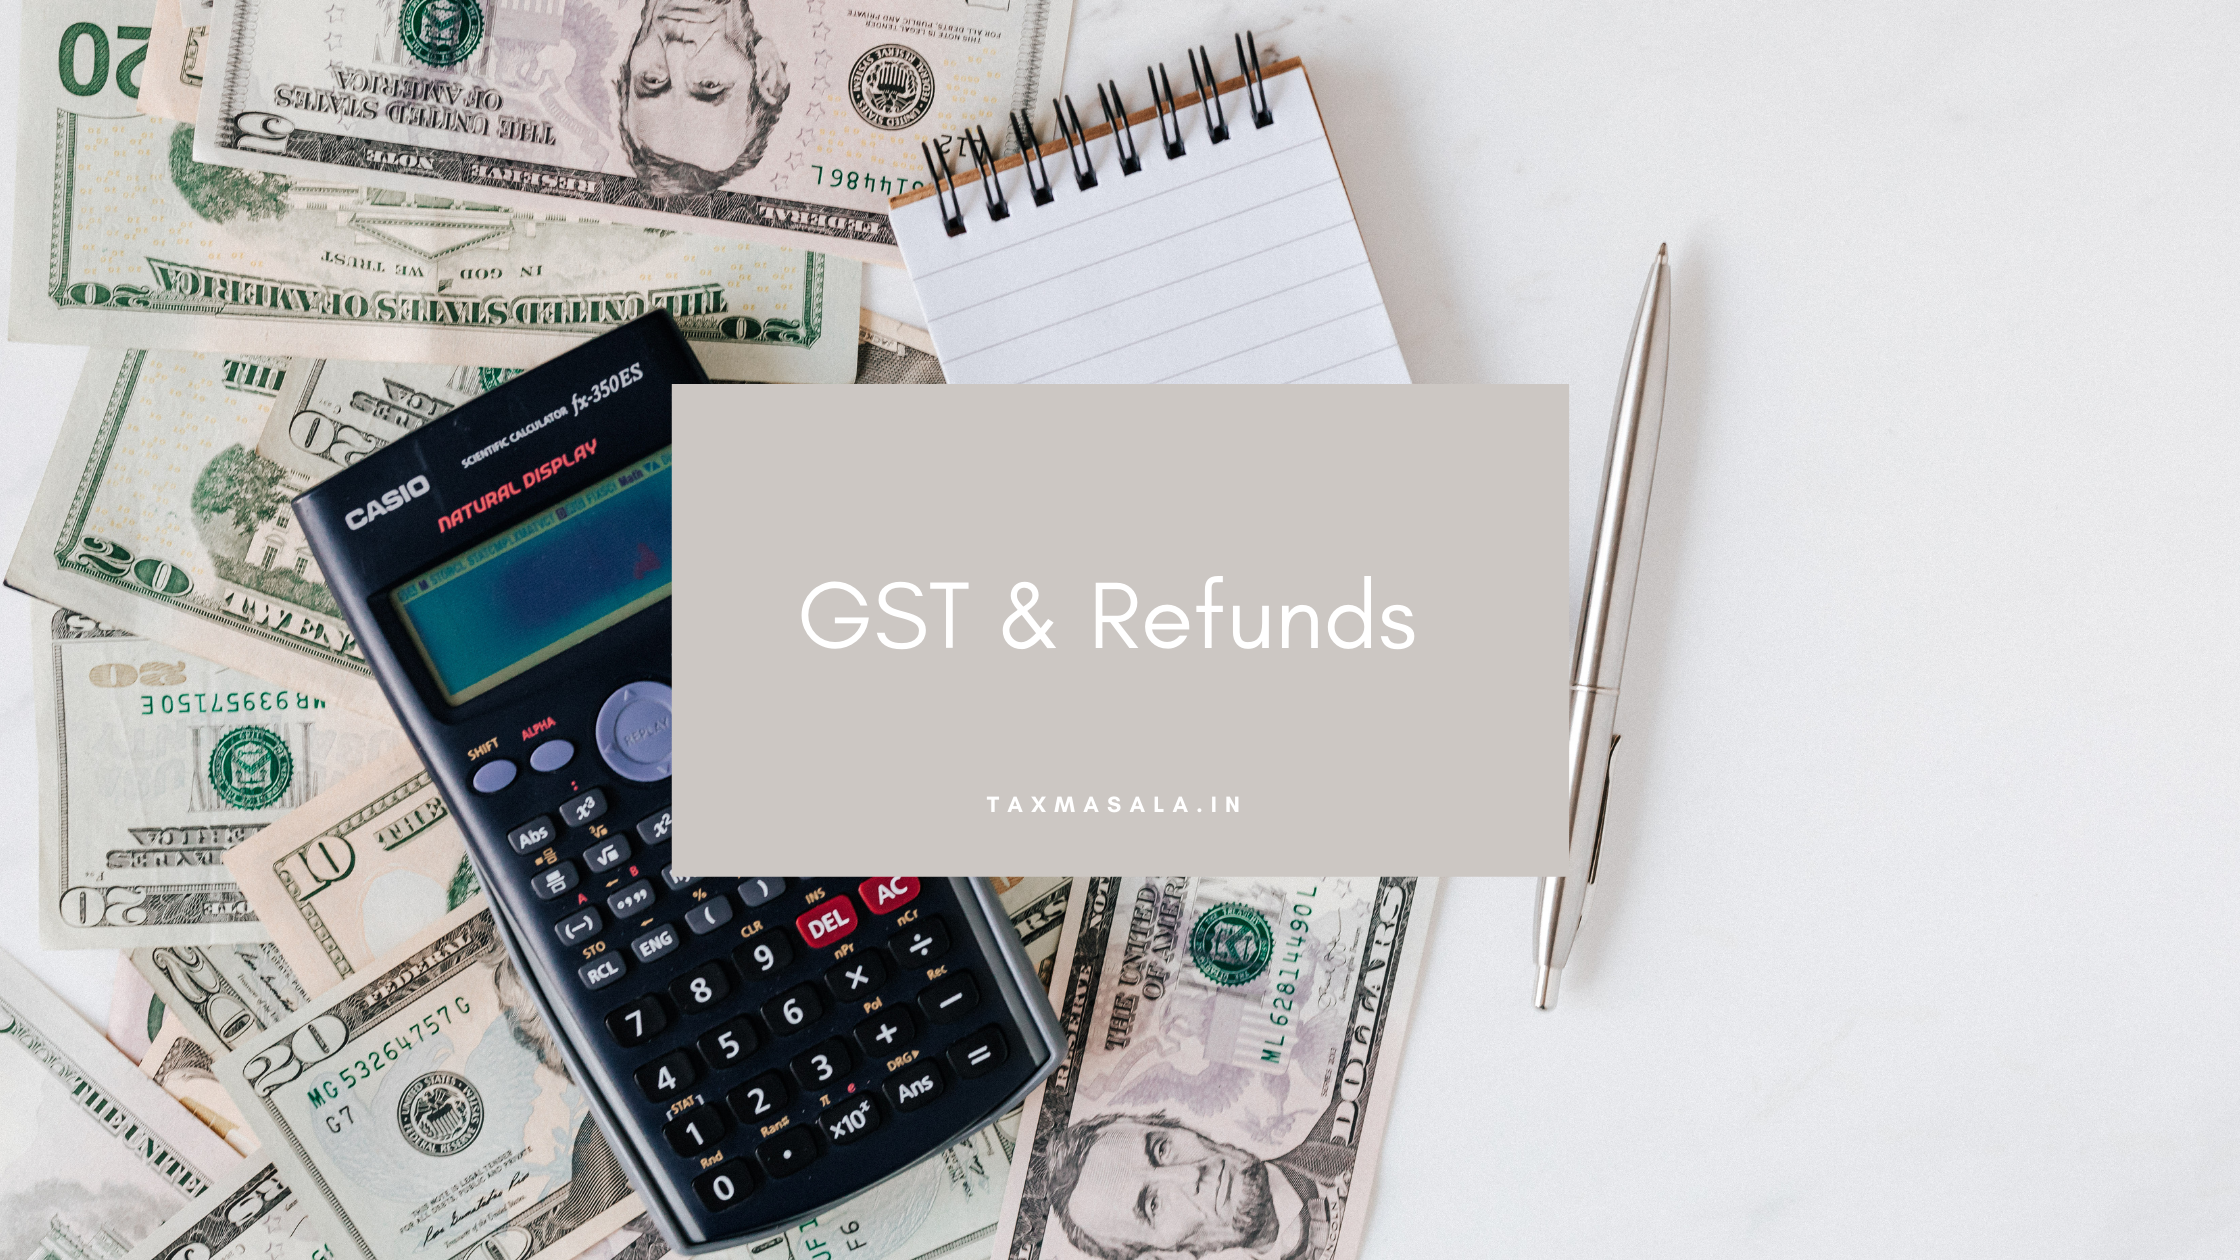 gst and refunds